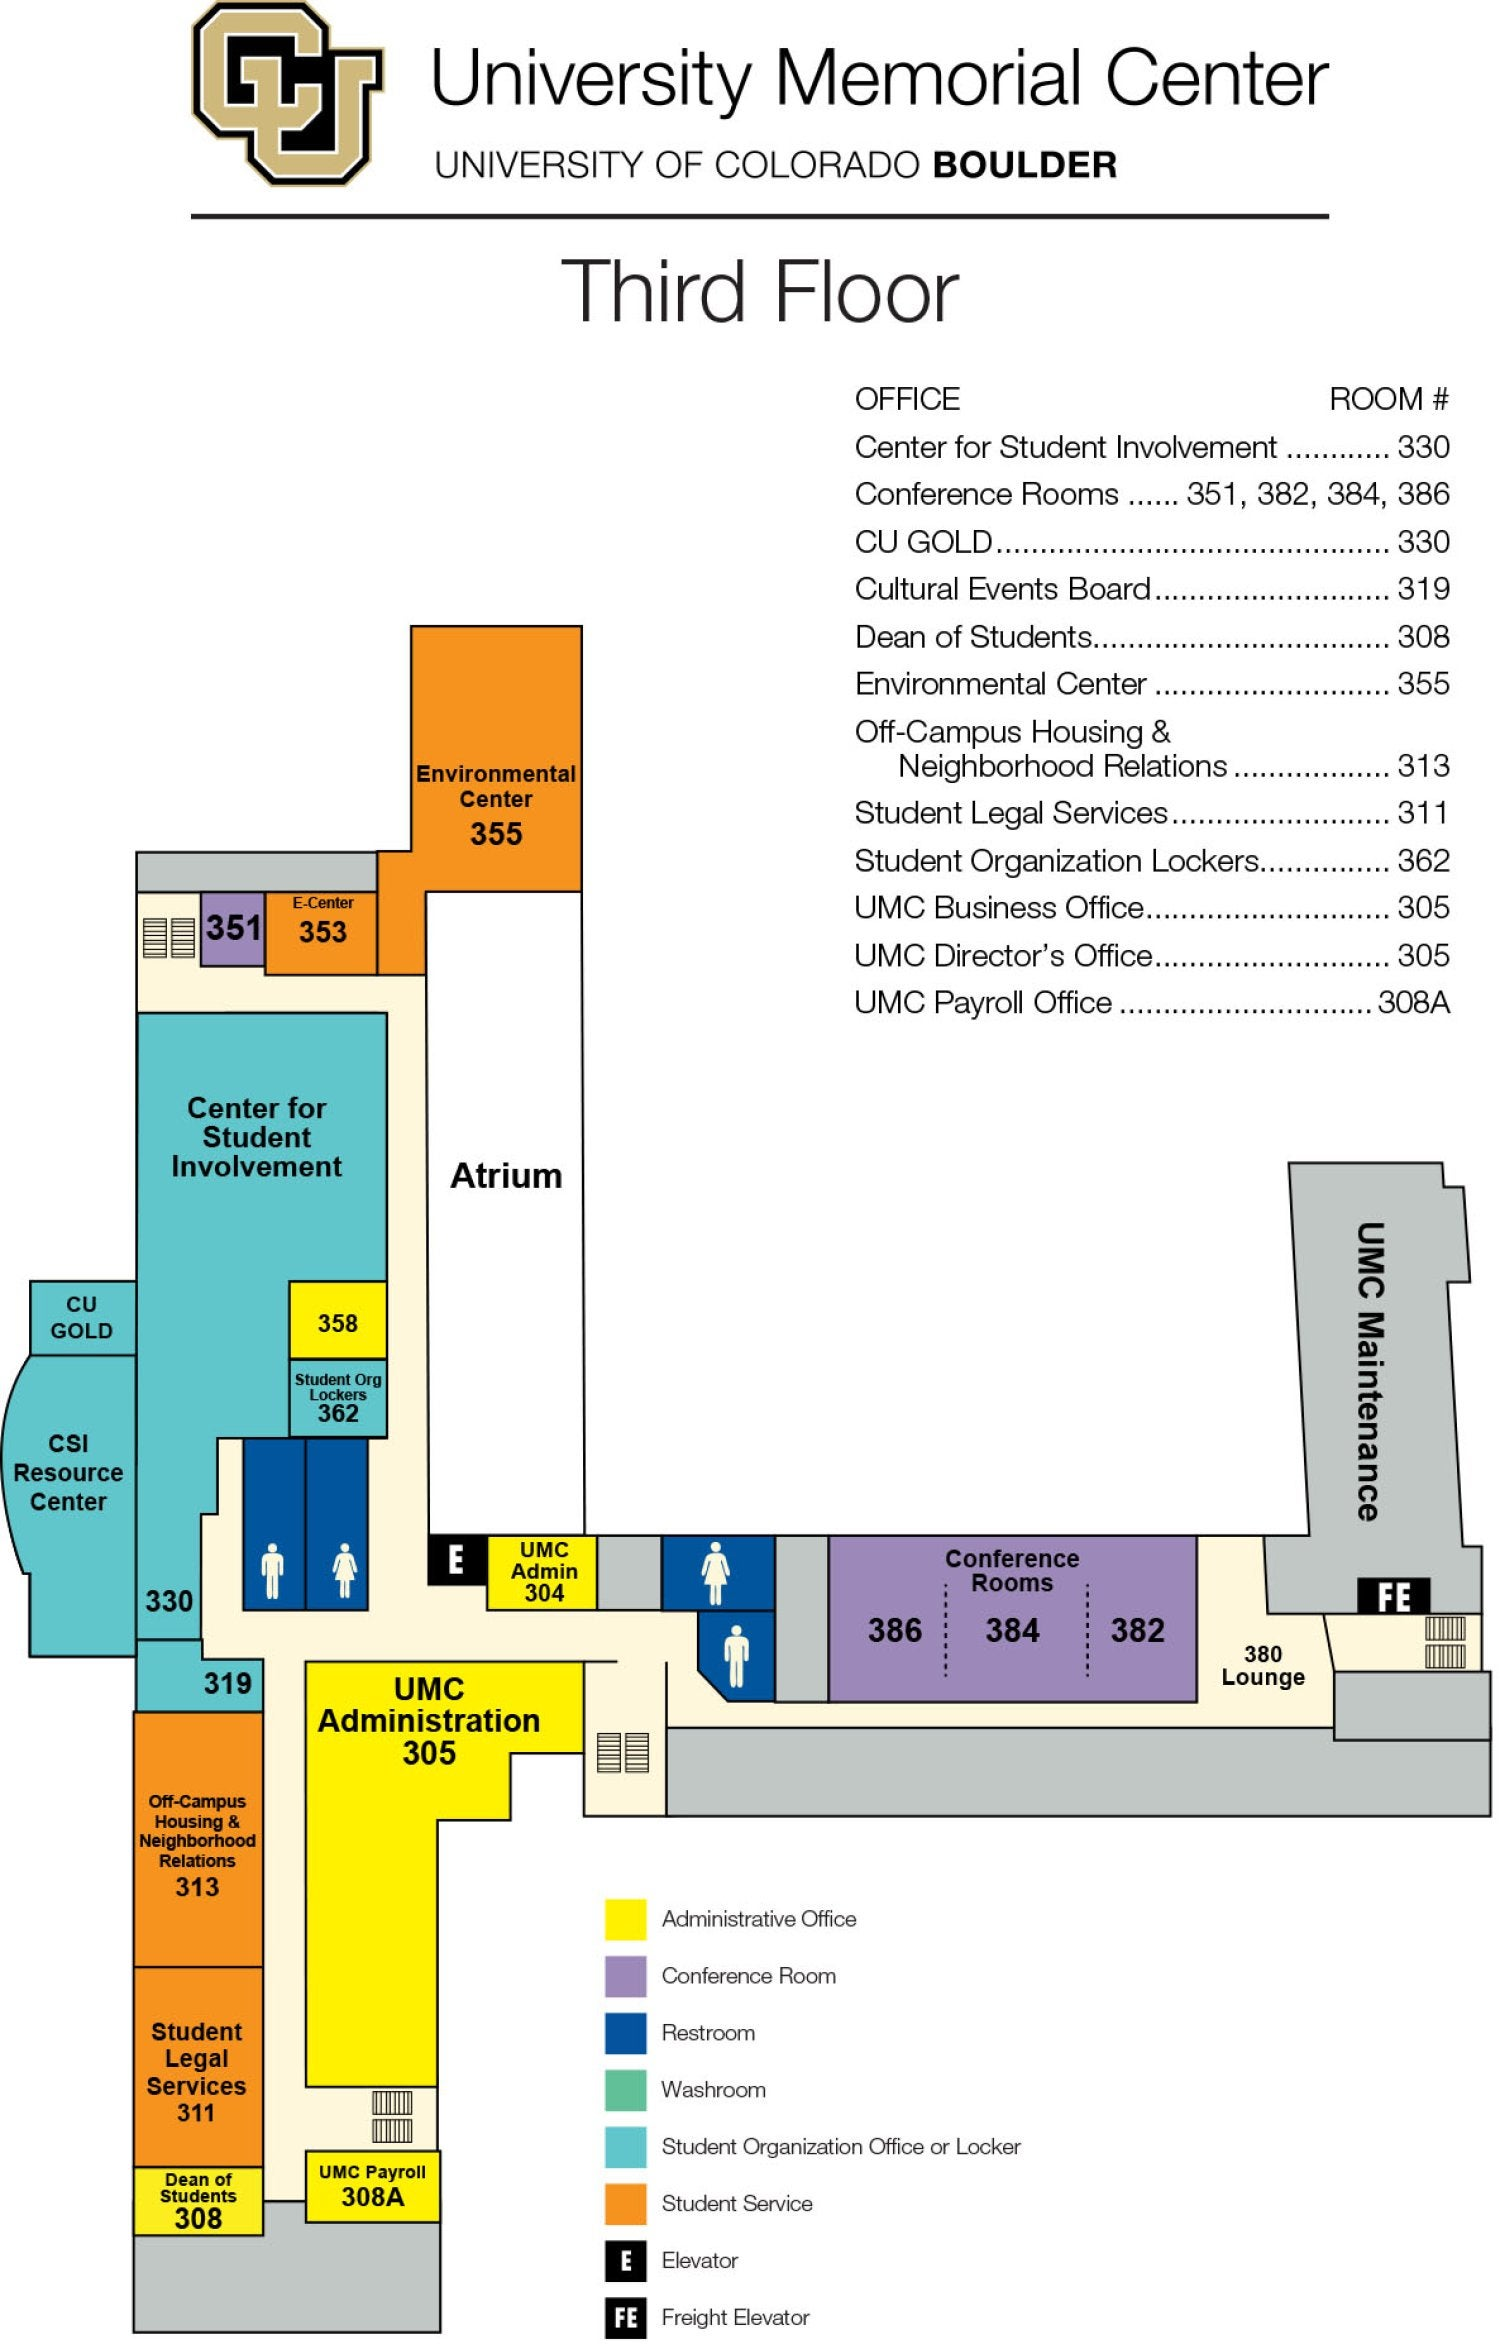 UMC third floor map showing Director's Office, Center for Student Involvement, Environmental Center, Off-Campus Housing and Student Legal Services, meeting rooms and student group offices.